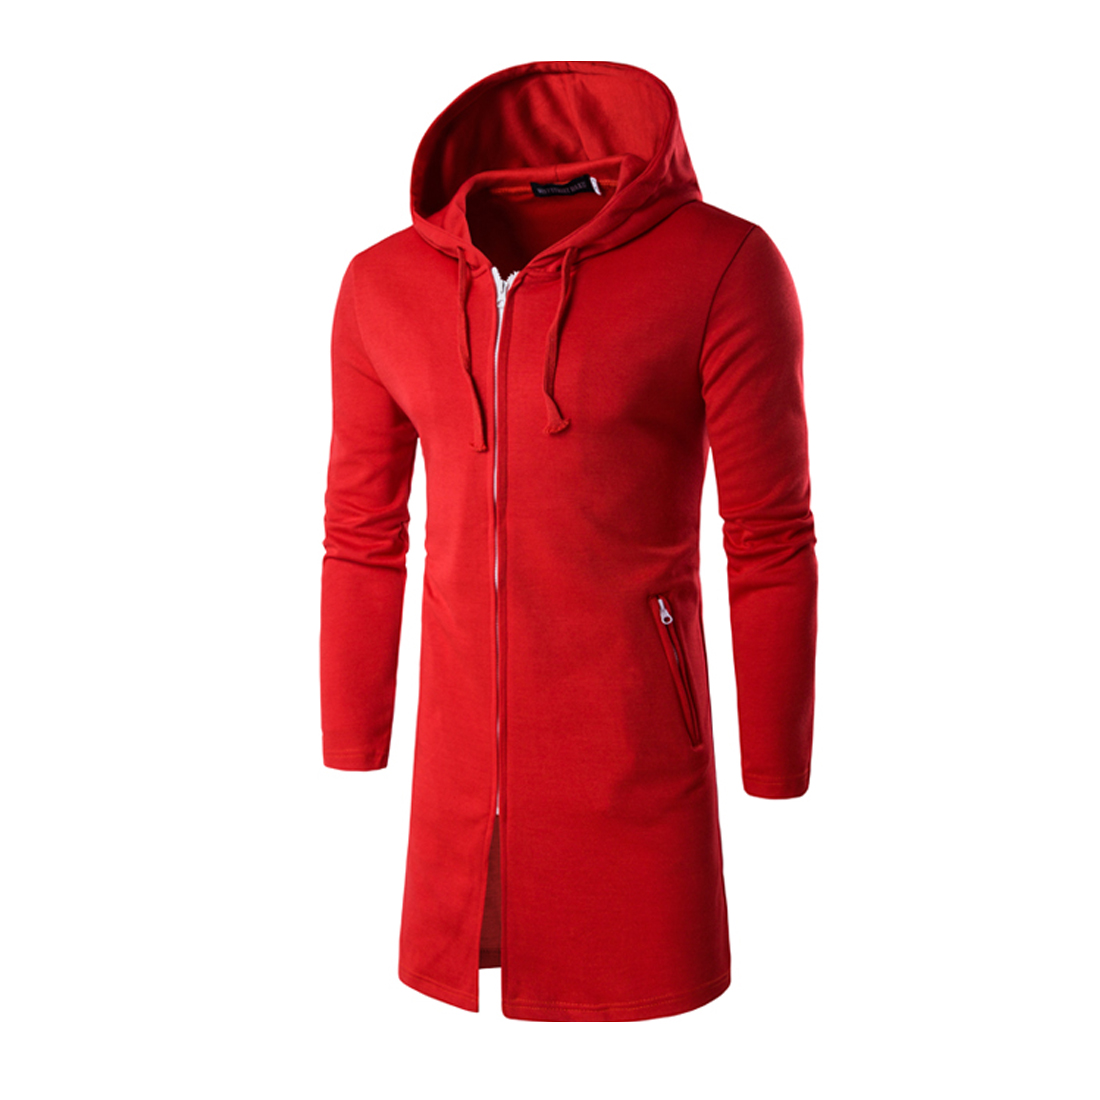 Long Red Hoodie - Hardon Clothes